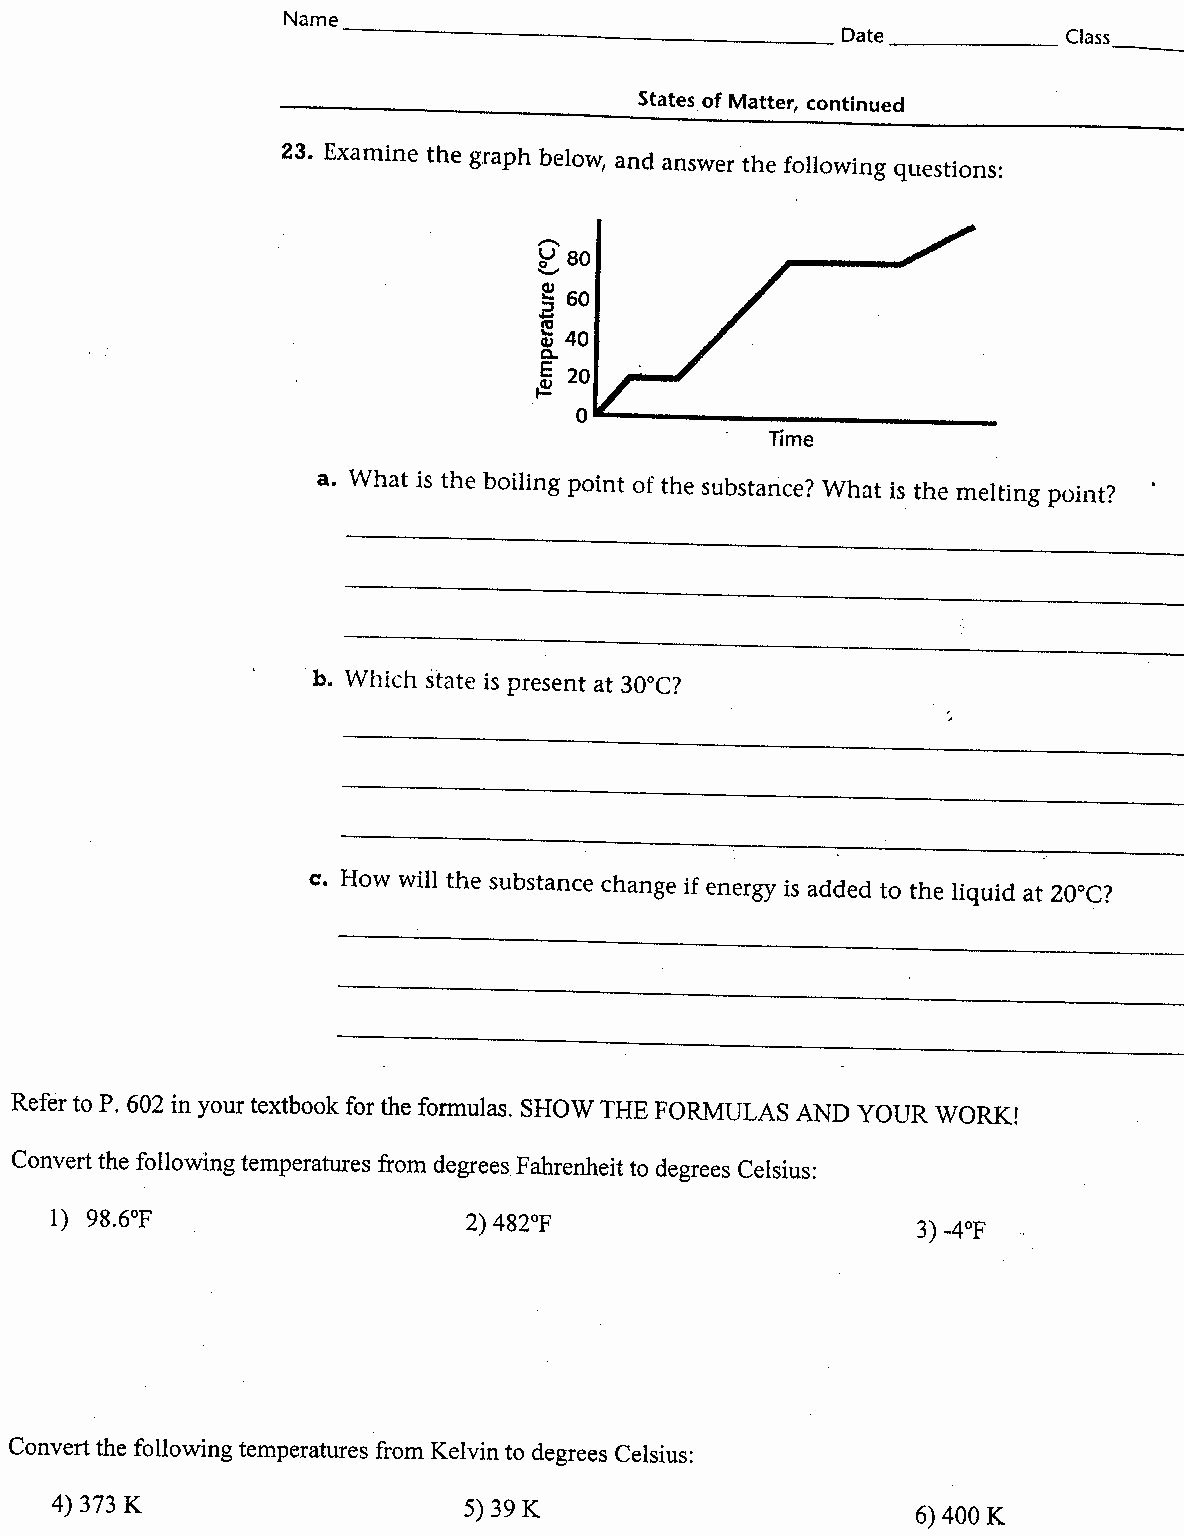 Heating and Cooling Curves Worksheet Lovely Heating and Cooling Curves Worksheet